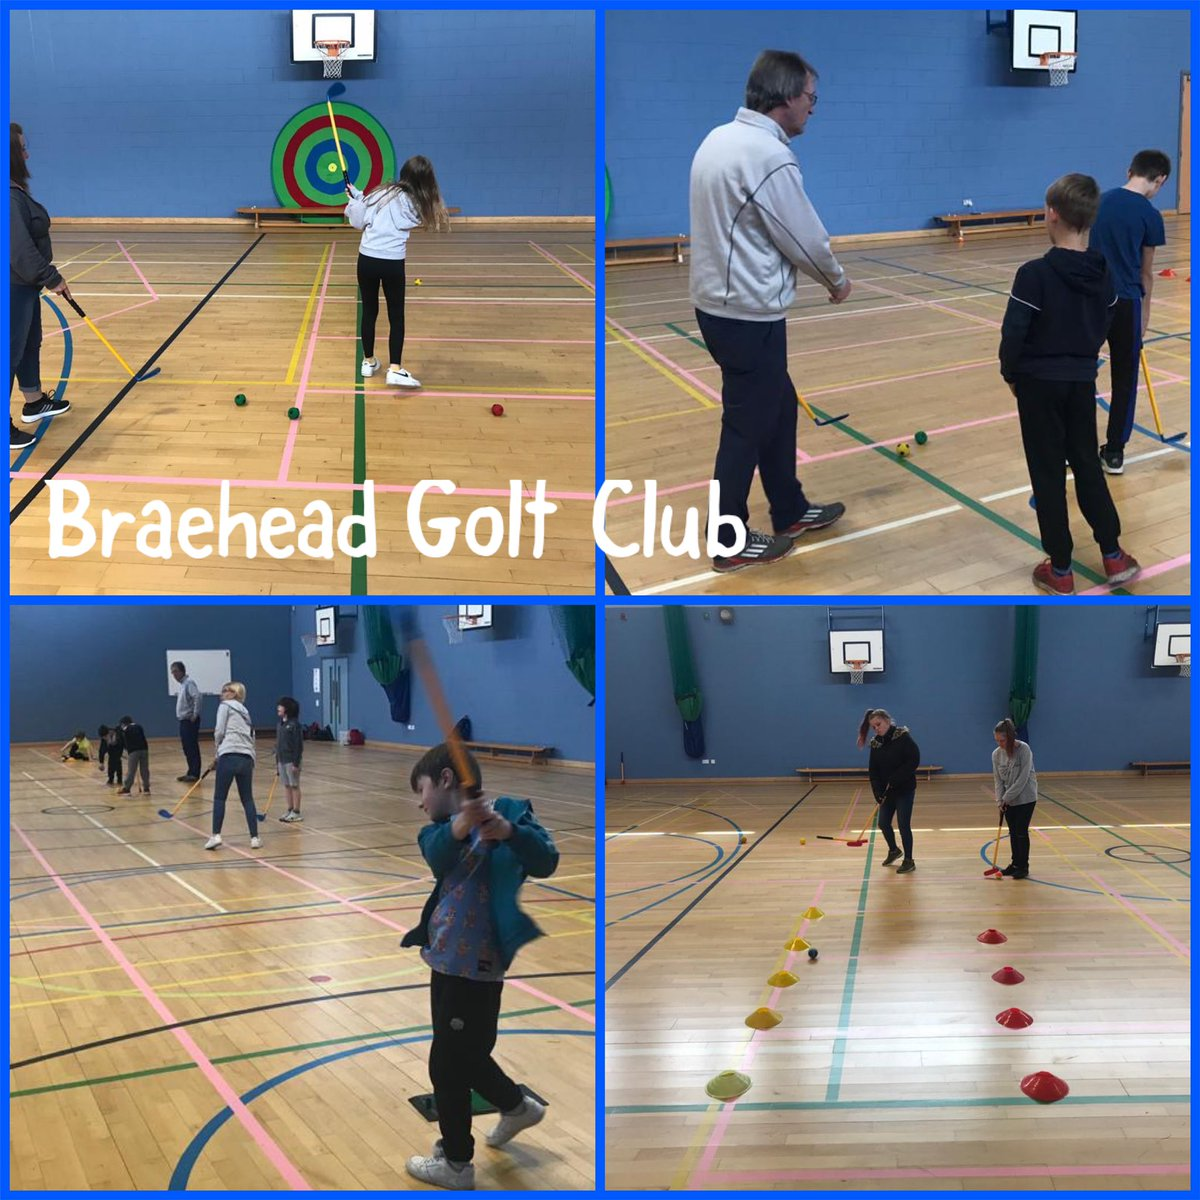 CLUB CONNECT Today we have Ron from @Braeheadgolf leading the children in golf as part of the summer learning hub programme @AlloaAcademy ⛳️⛳️ Great fun developing their putting & chipping skills 👍 @ScottishGolf @sportscotland @ClacksEducation #partnerships https://t.co/0nuvtlp3nf